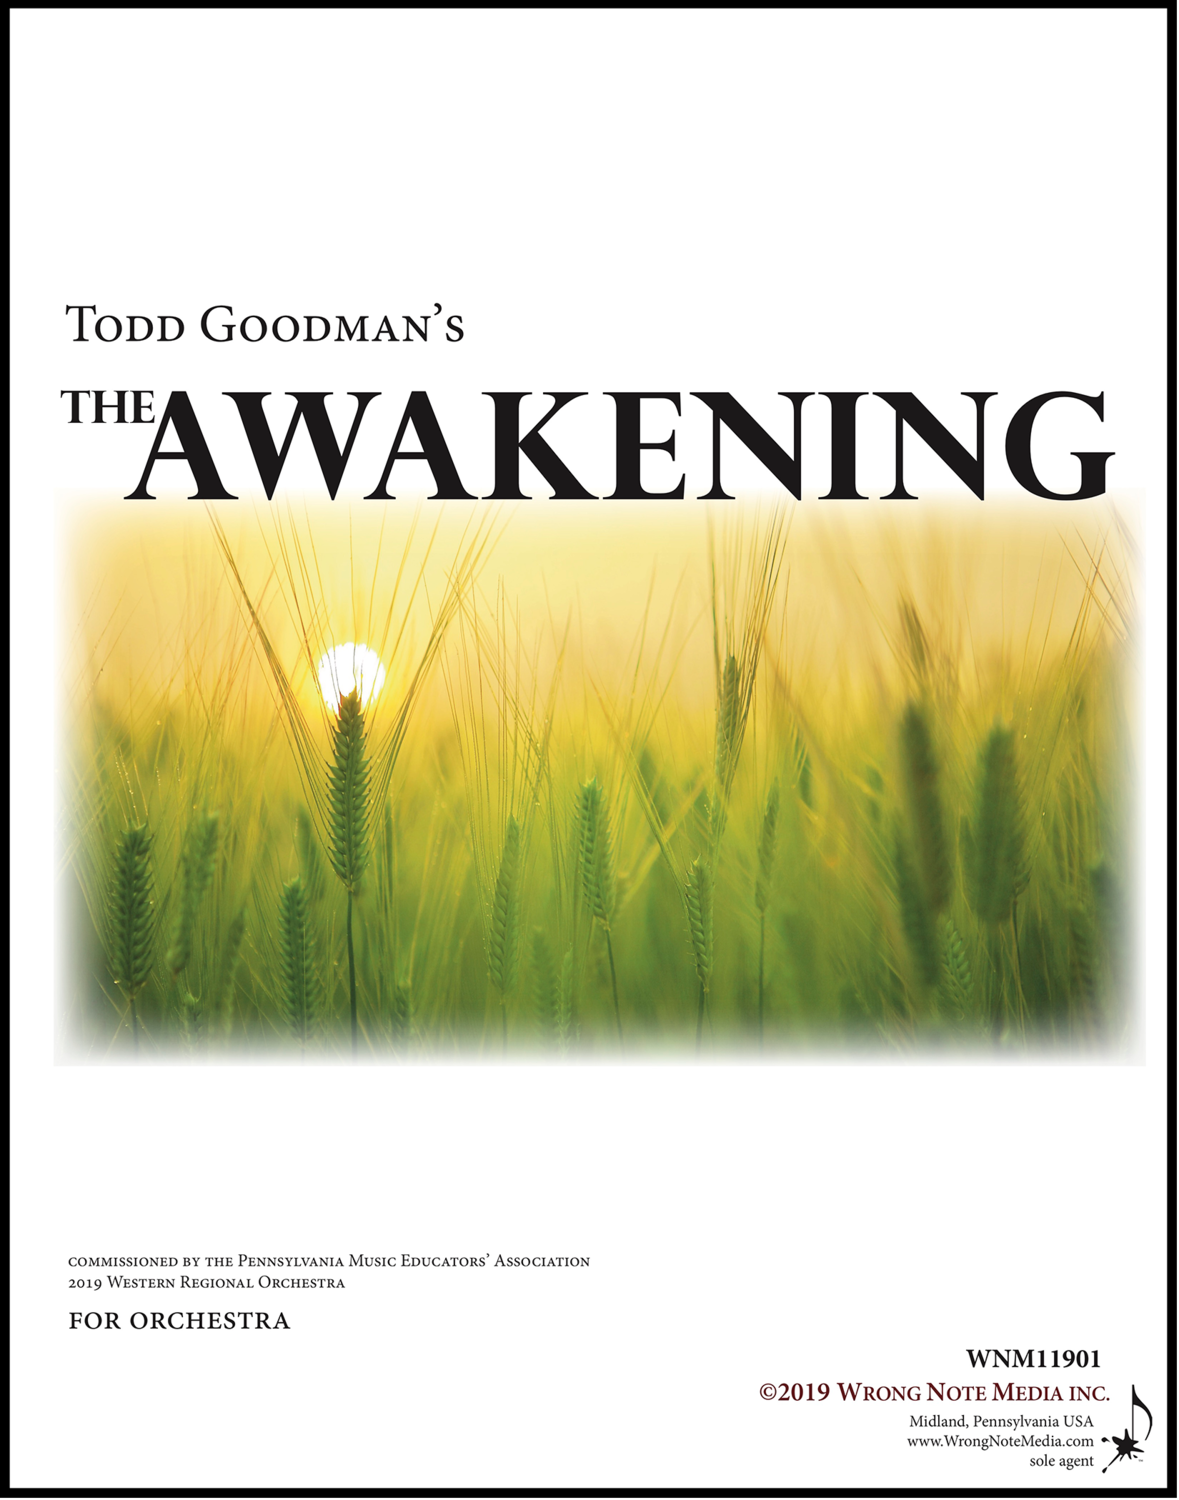 The Awakening - orchestra SCORE, by Todd Goodman